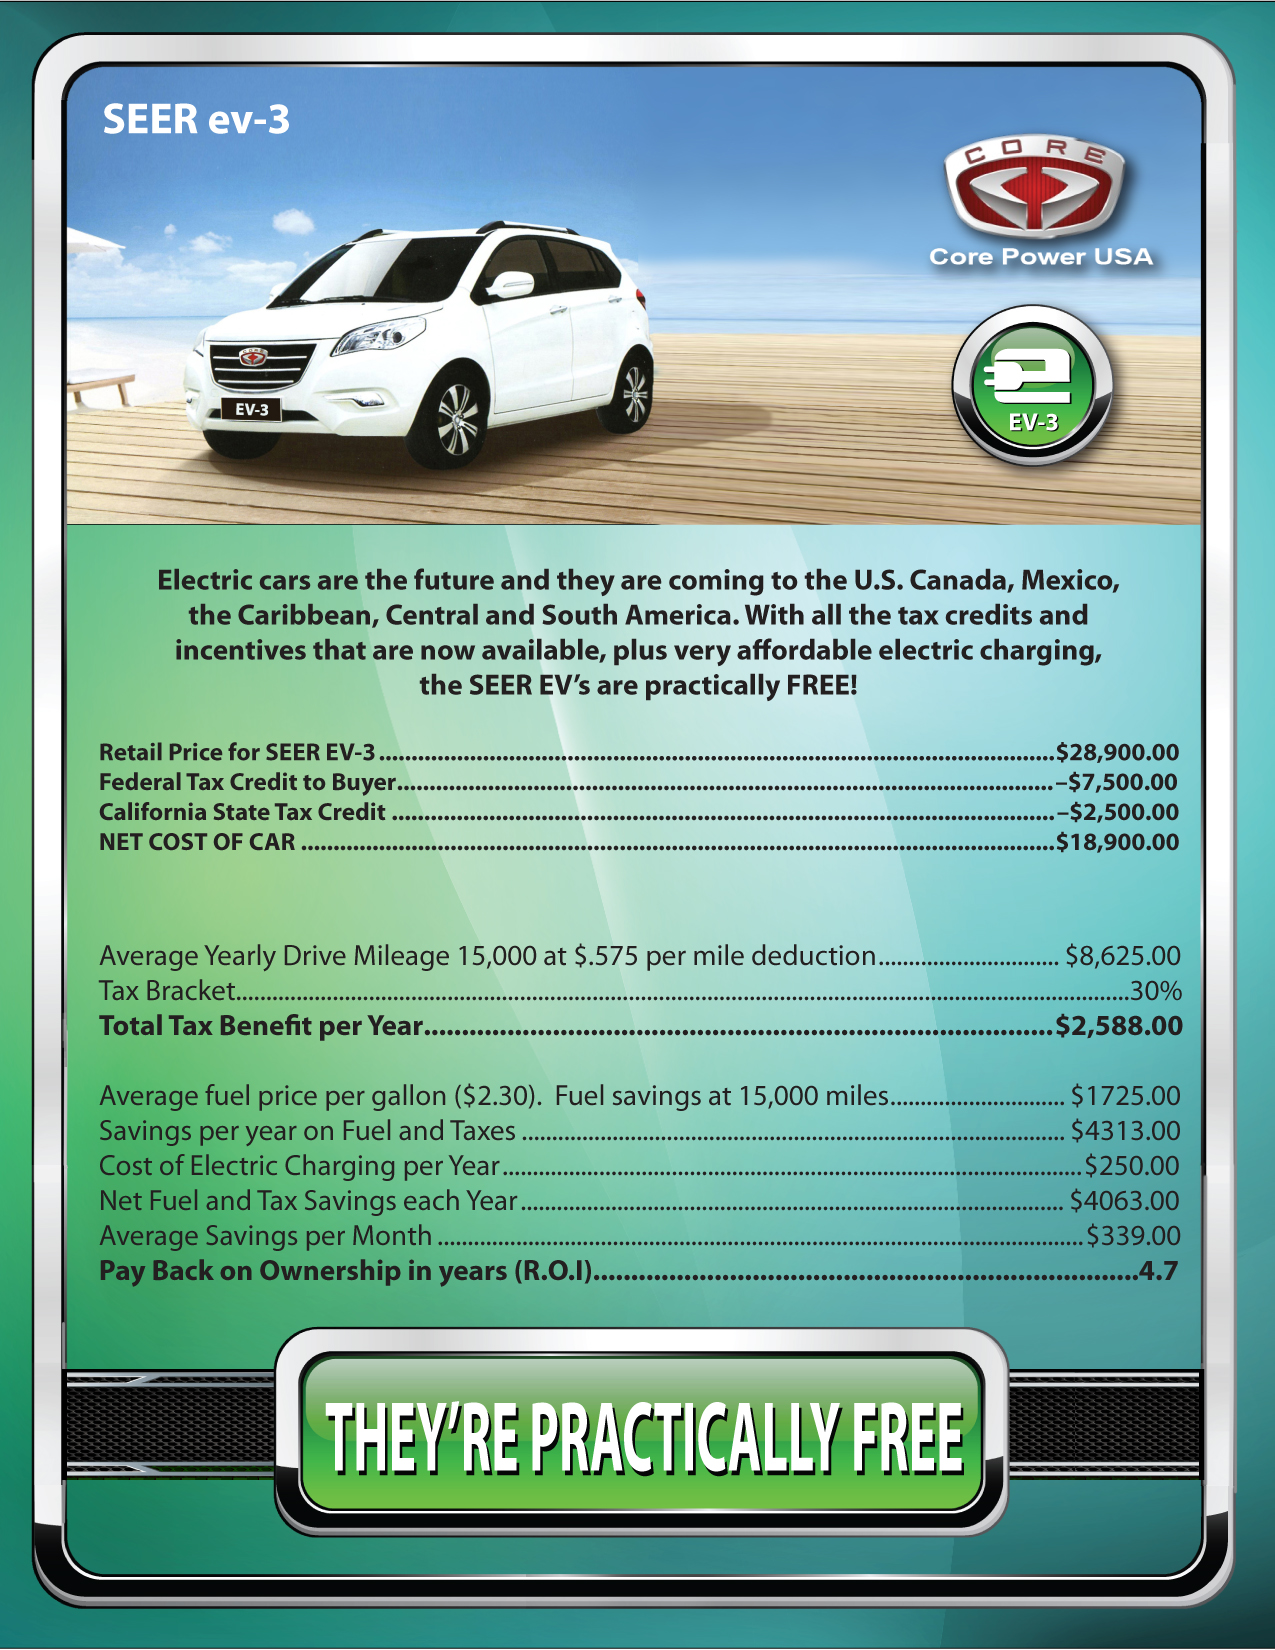 Core Power USA EV-3 Incentives